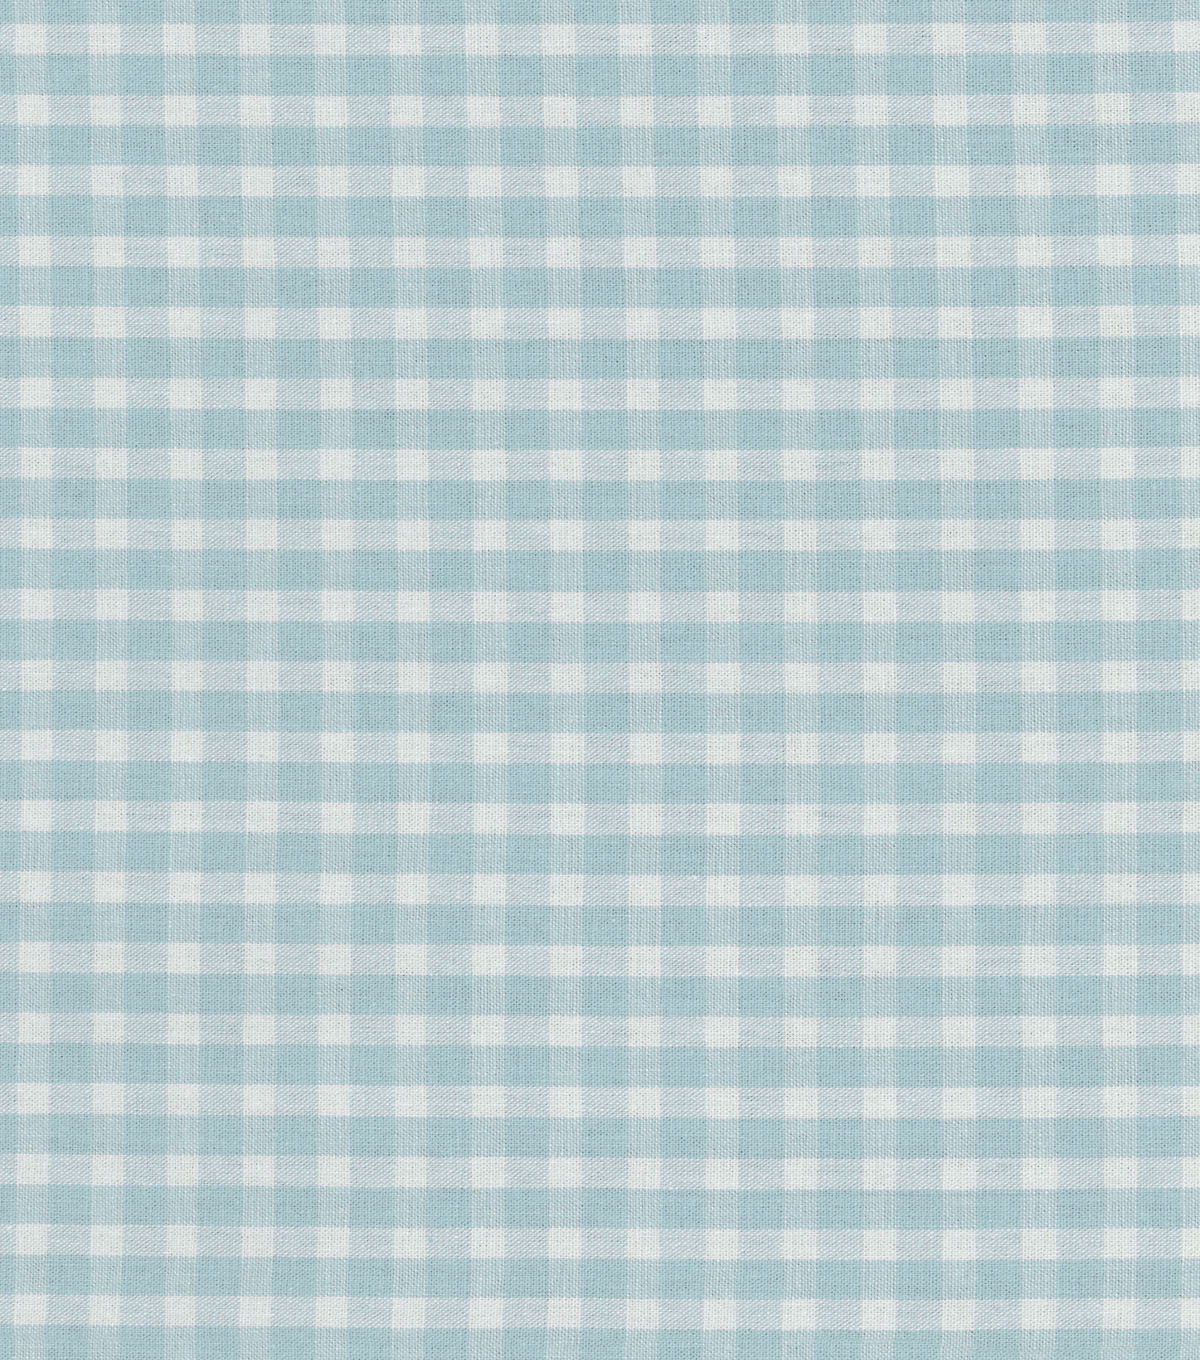 Home Decor 8\u0022x8\u0022 Fabric Swatch-PKL Double Check Sky